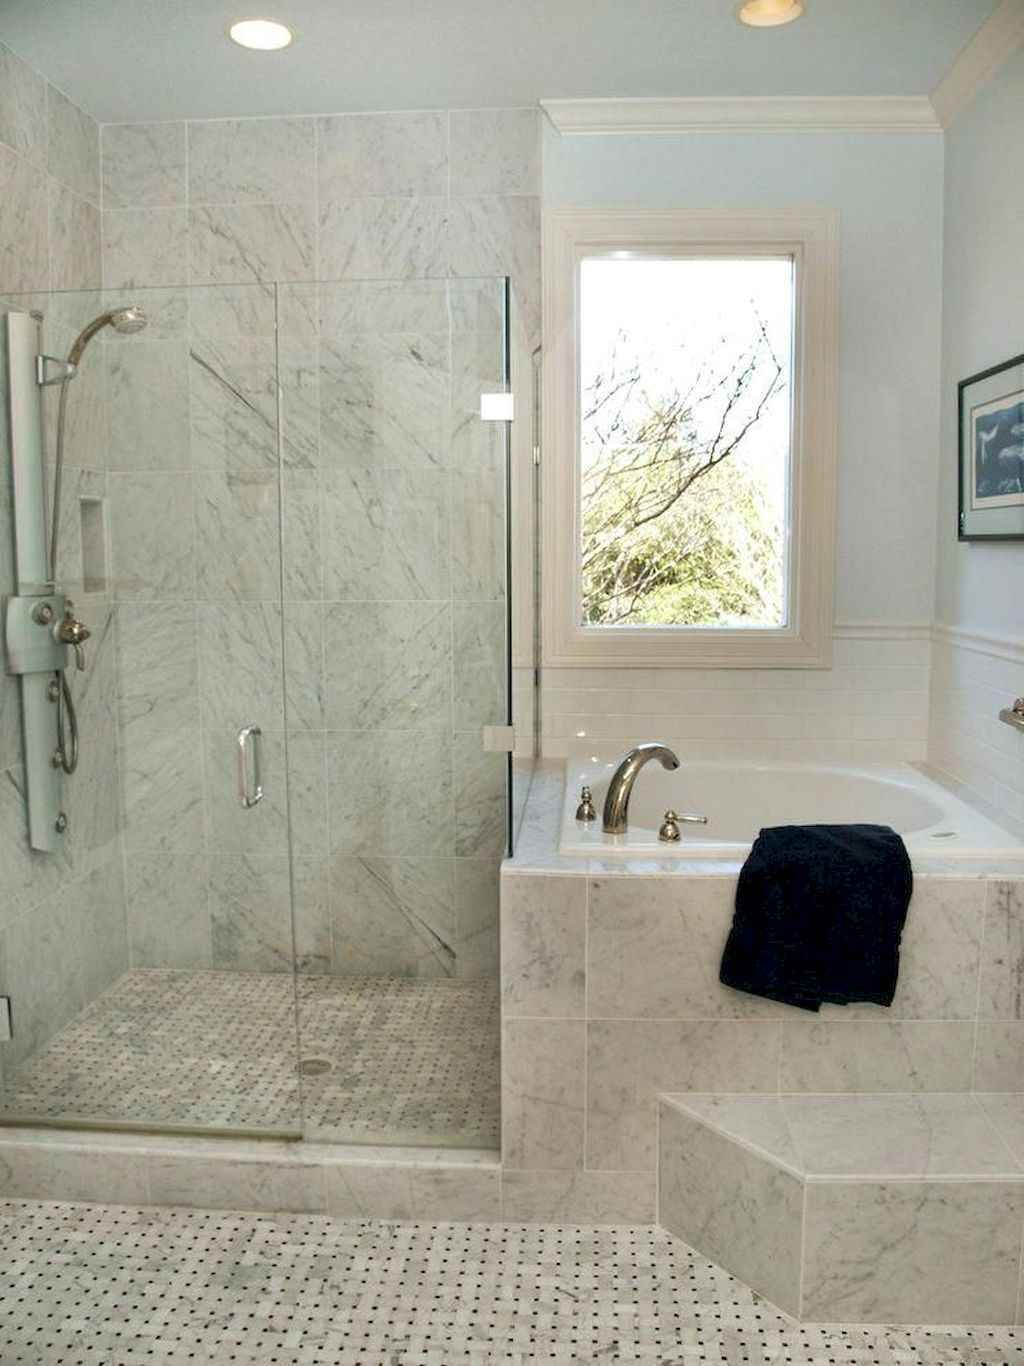 One Of The Bigger Tiny Space Design Challenges Tiny House Owner Builders Face Are Bathrooms A Typical Small Tiny Bathrooms Diy Bathroom Design Small Bathroom